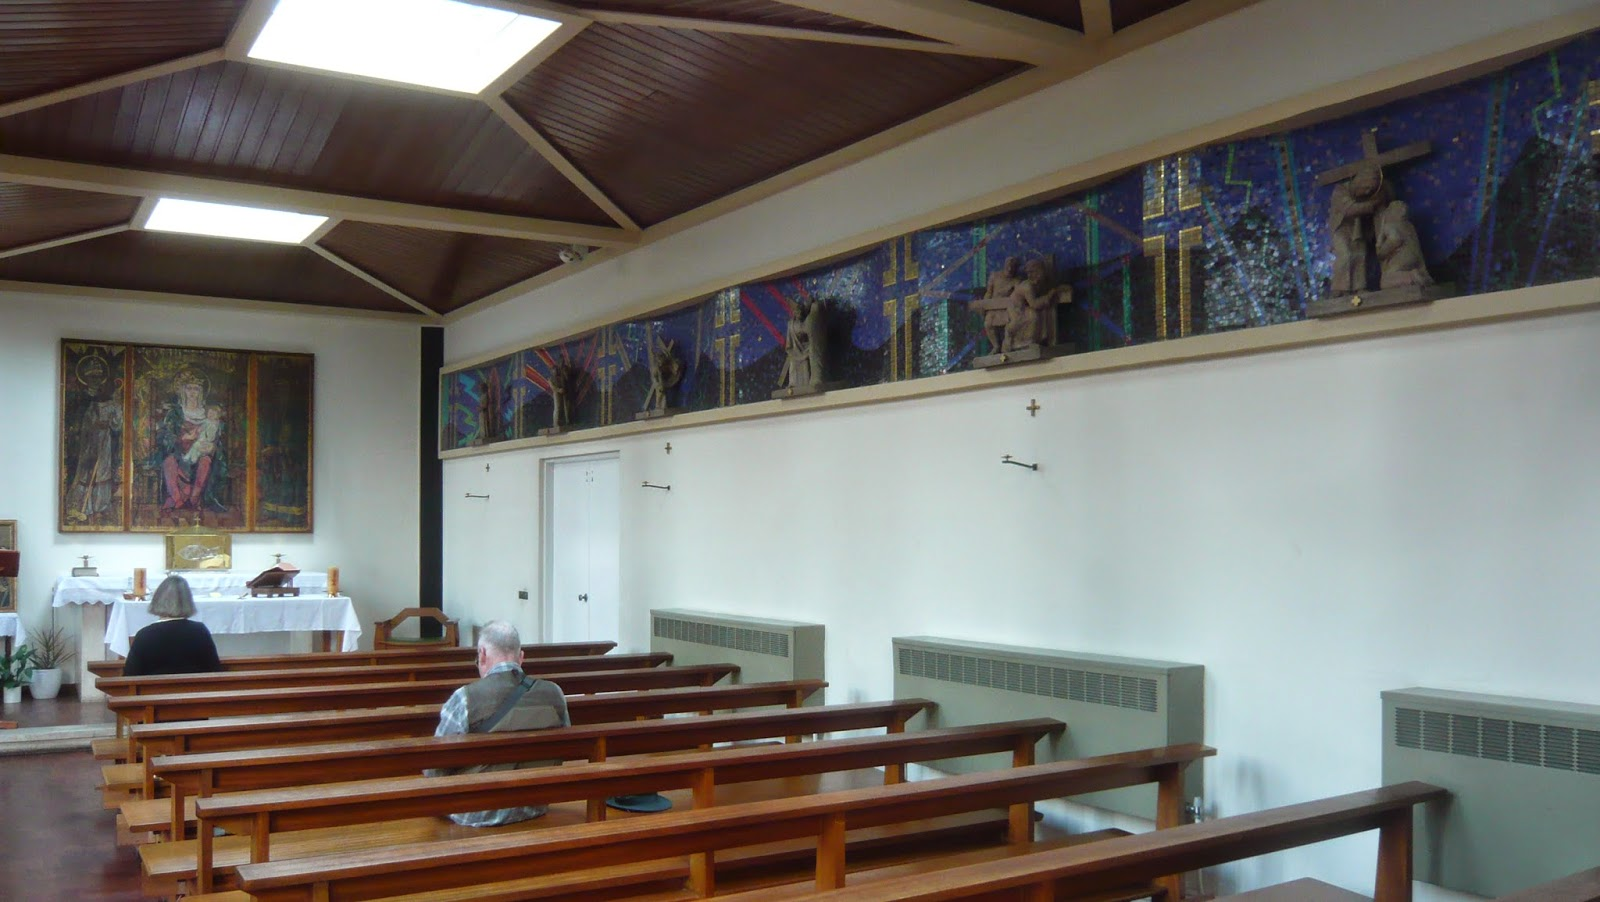 Between: Sabbatical art pilgrimage: St Aidan of Lindisfarne East Acton